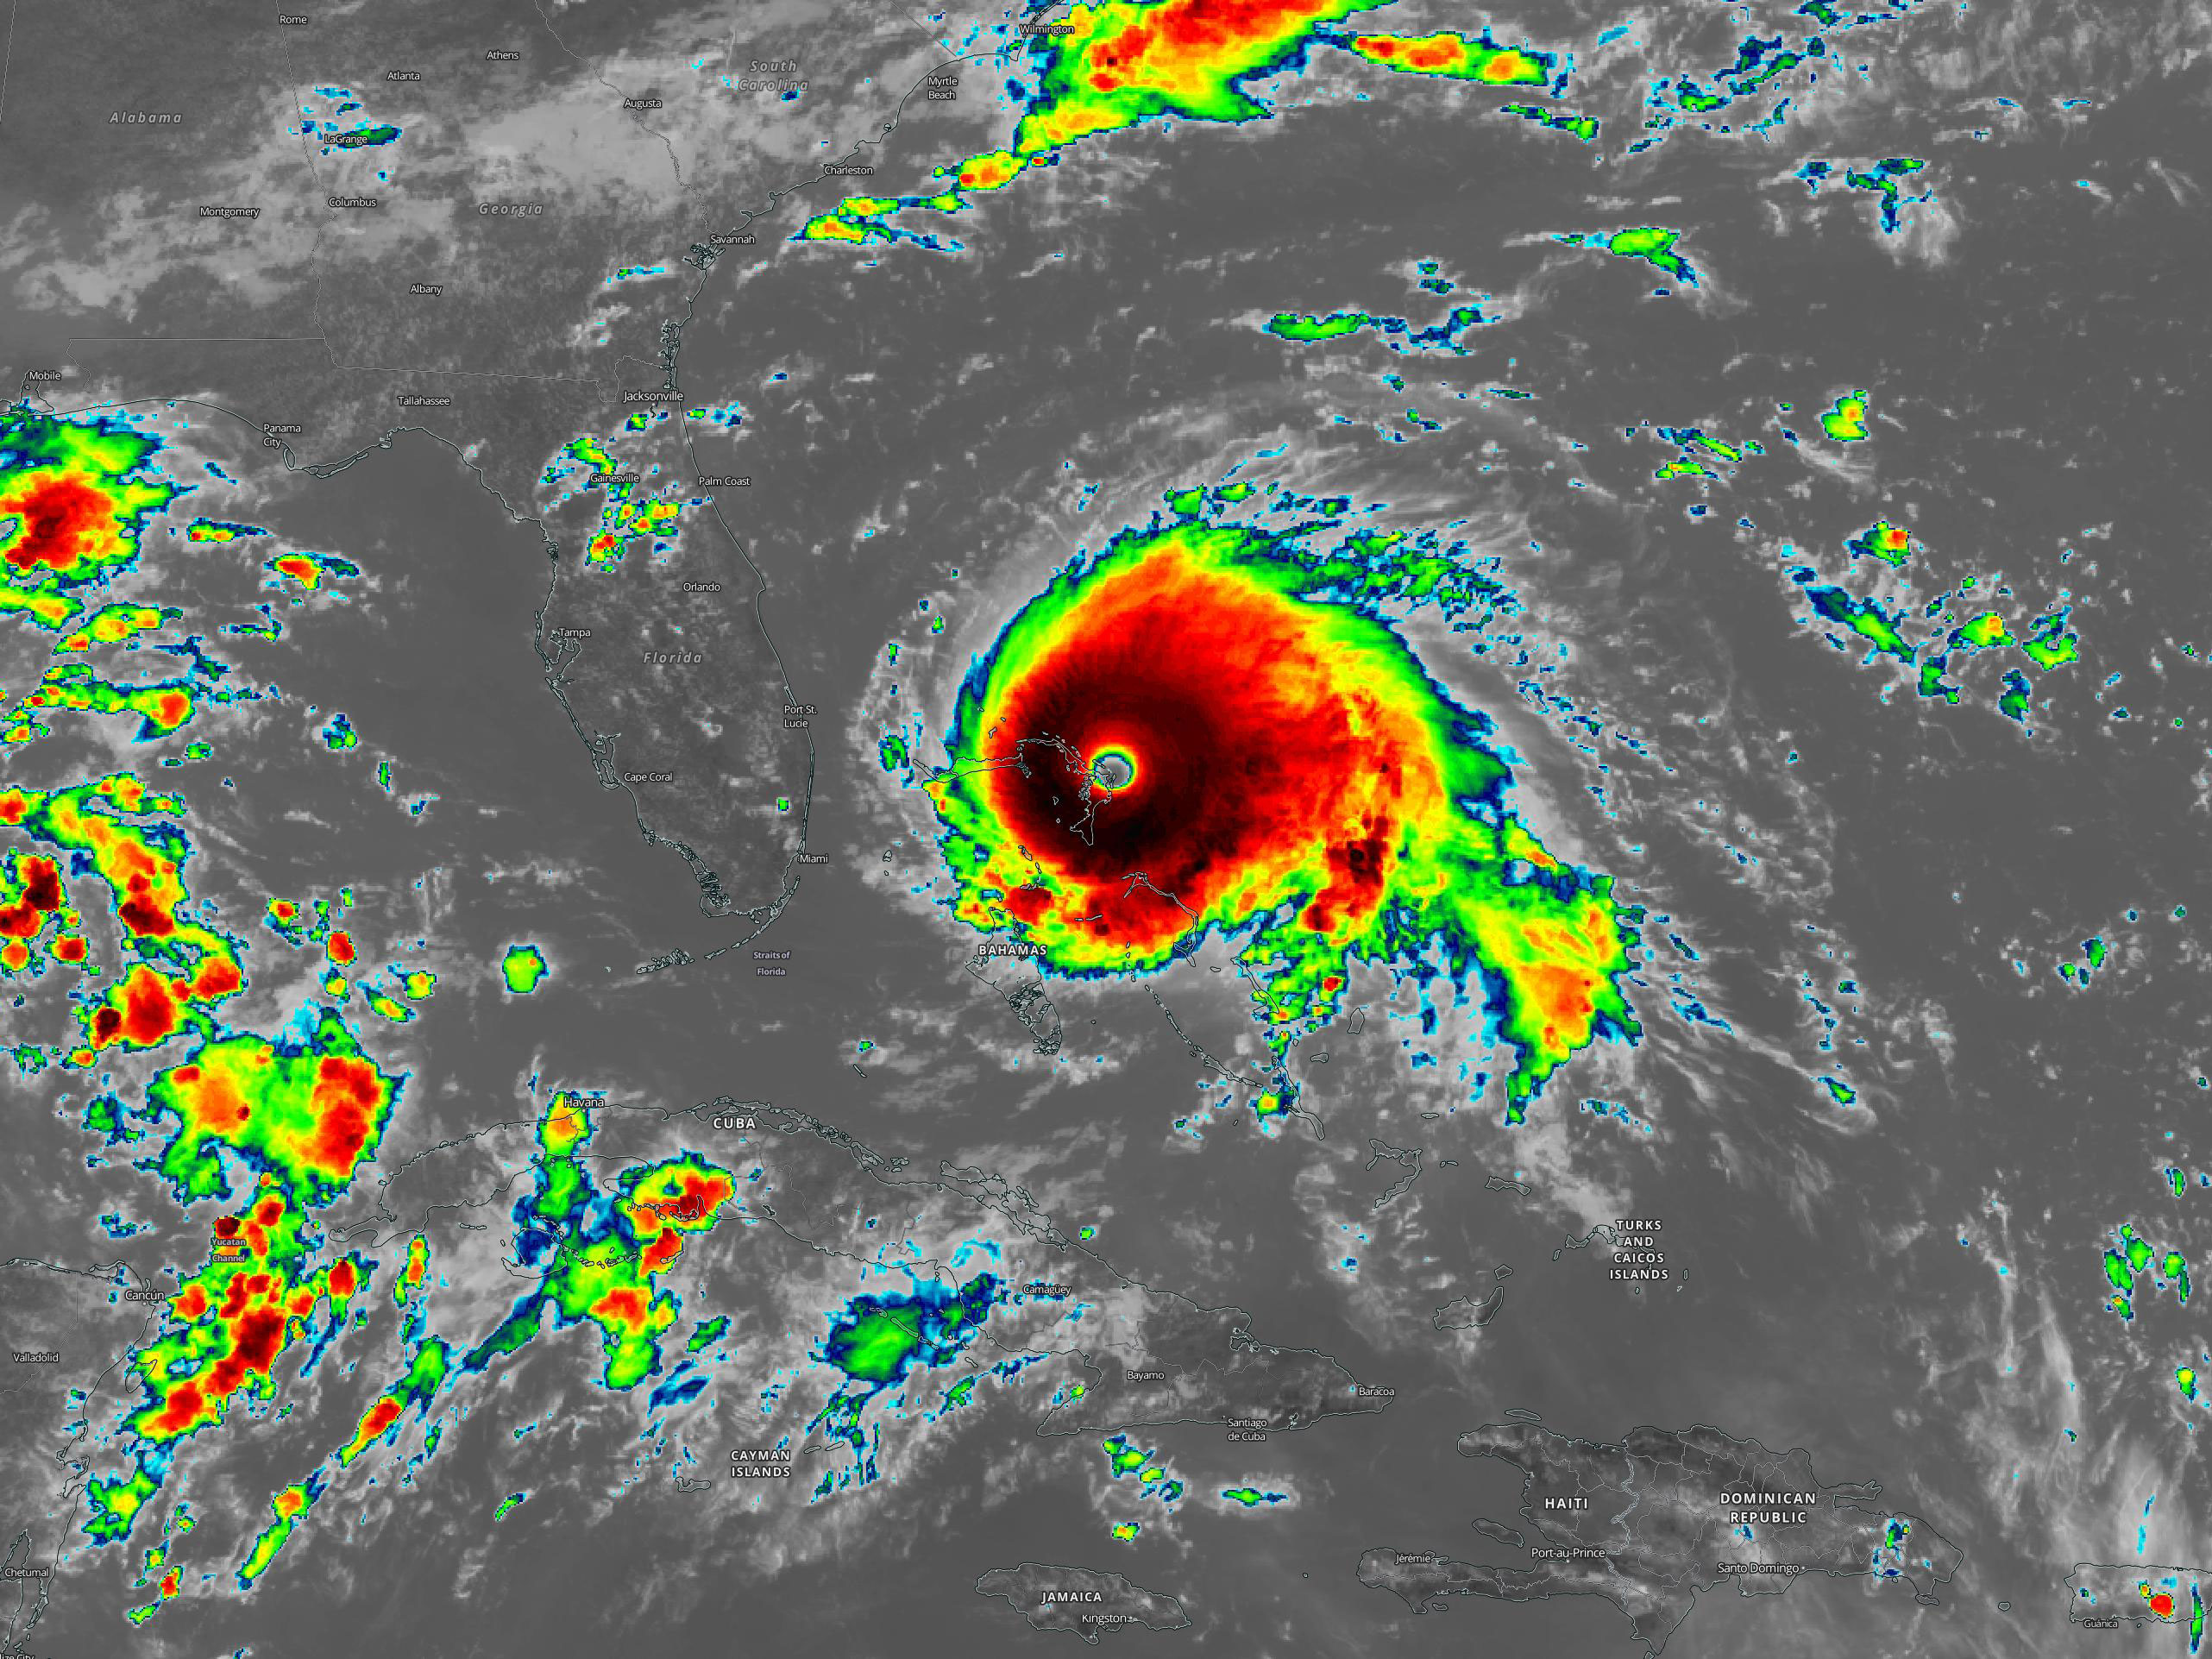 Hurricane Dorian on 1 September 2019